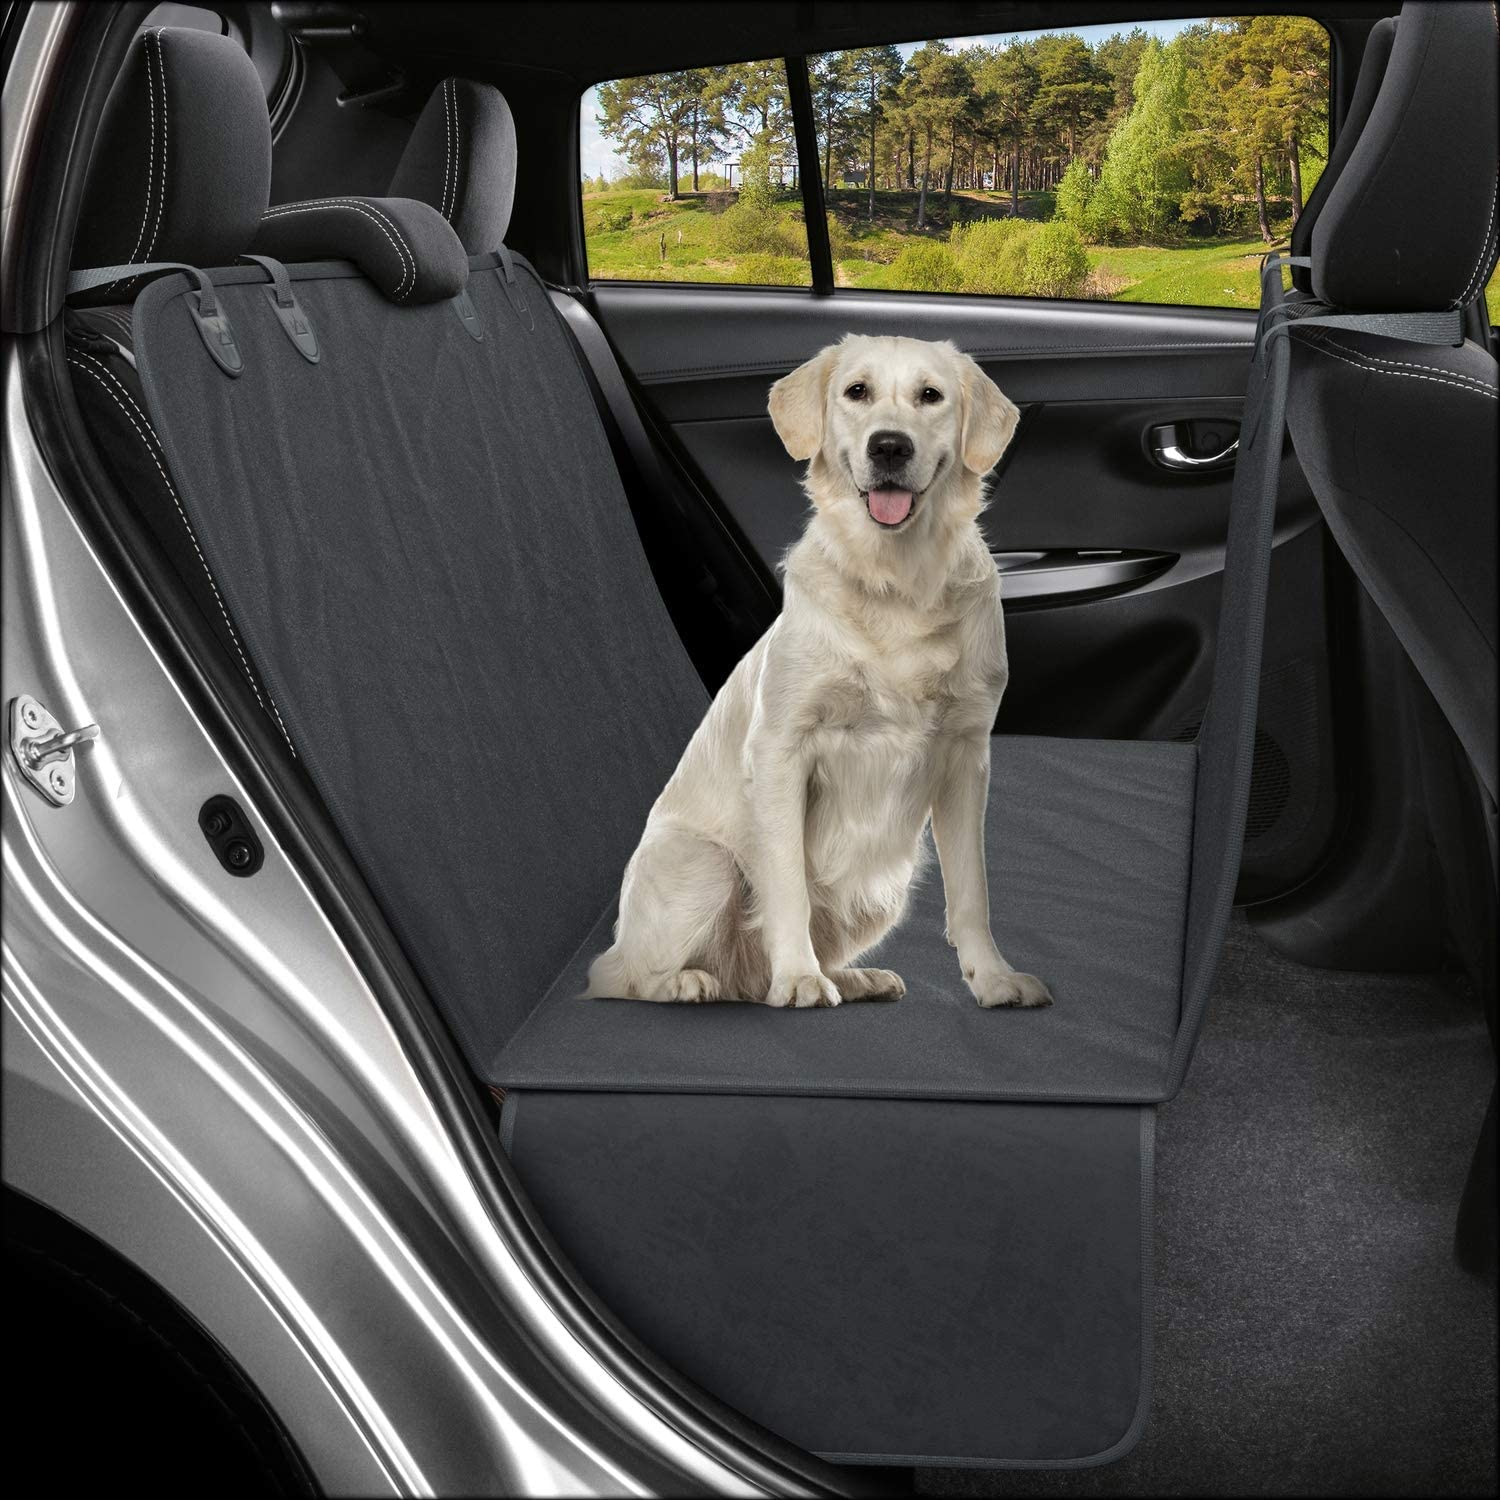 UKB4C Padded Quilted Rear Car Seat Cover Dog Protector fits Kia Rio